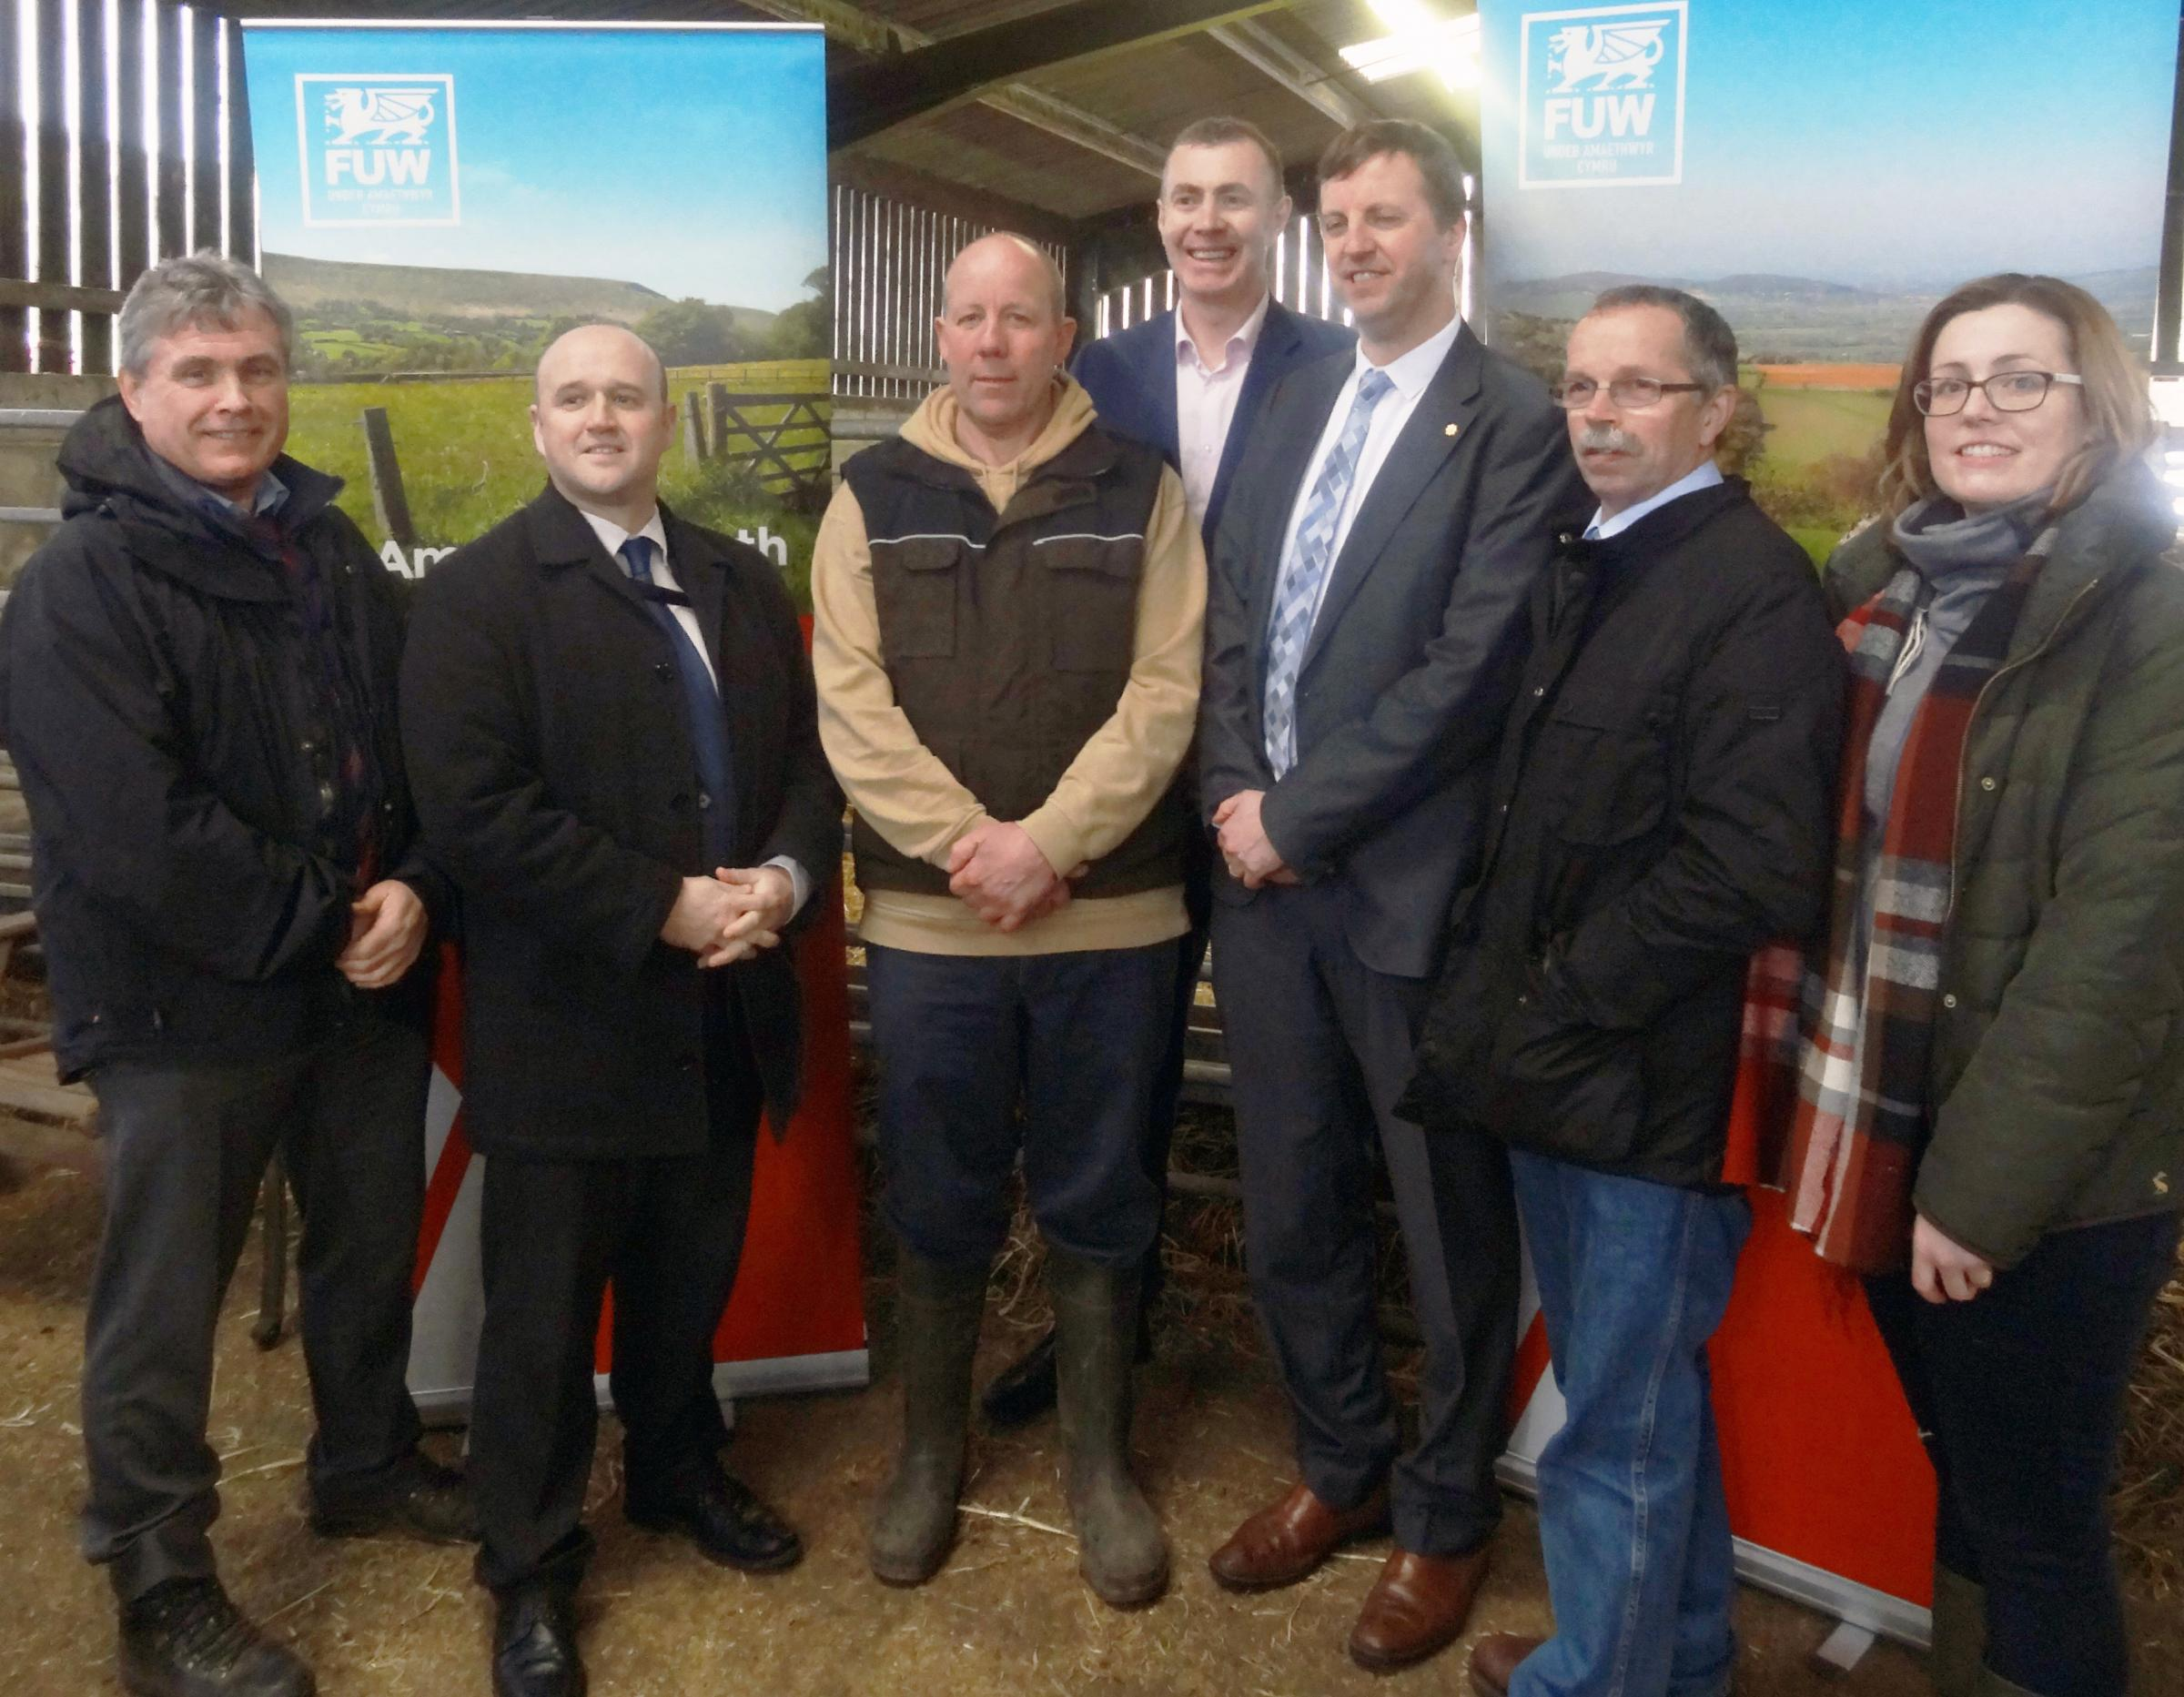 FUW Carmarthen CEO David Waters, Dafydd Llewelyn, Dyfed Powys Police and Crime Commissioner, FUW vice-president Ian Rickman, Adam Price AM, Jonathan Edwards MP, Councillor Gareth Thomas and FUW assistant CEO in Carmarthen Nerys Edwards.